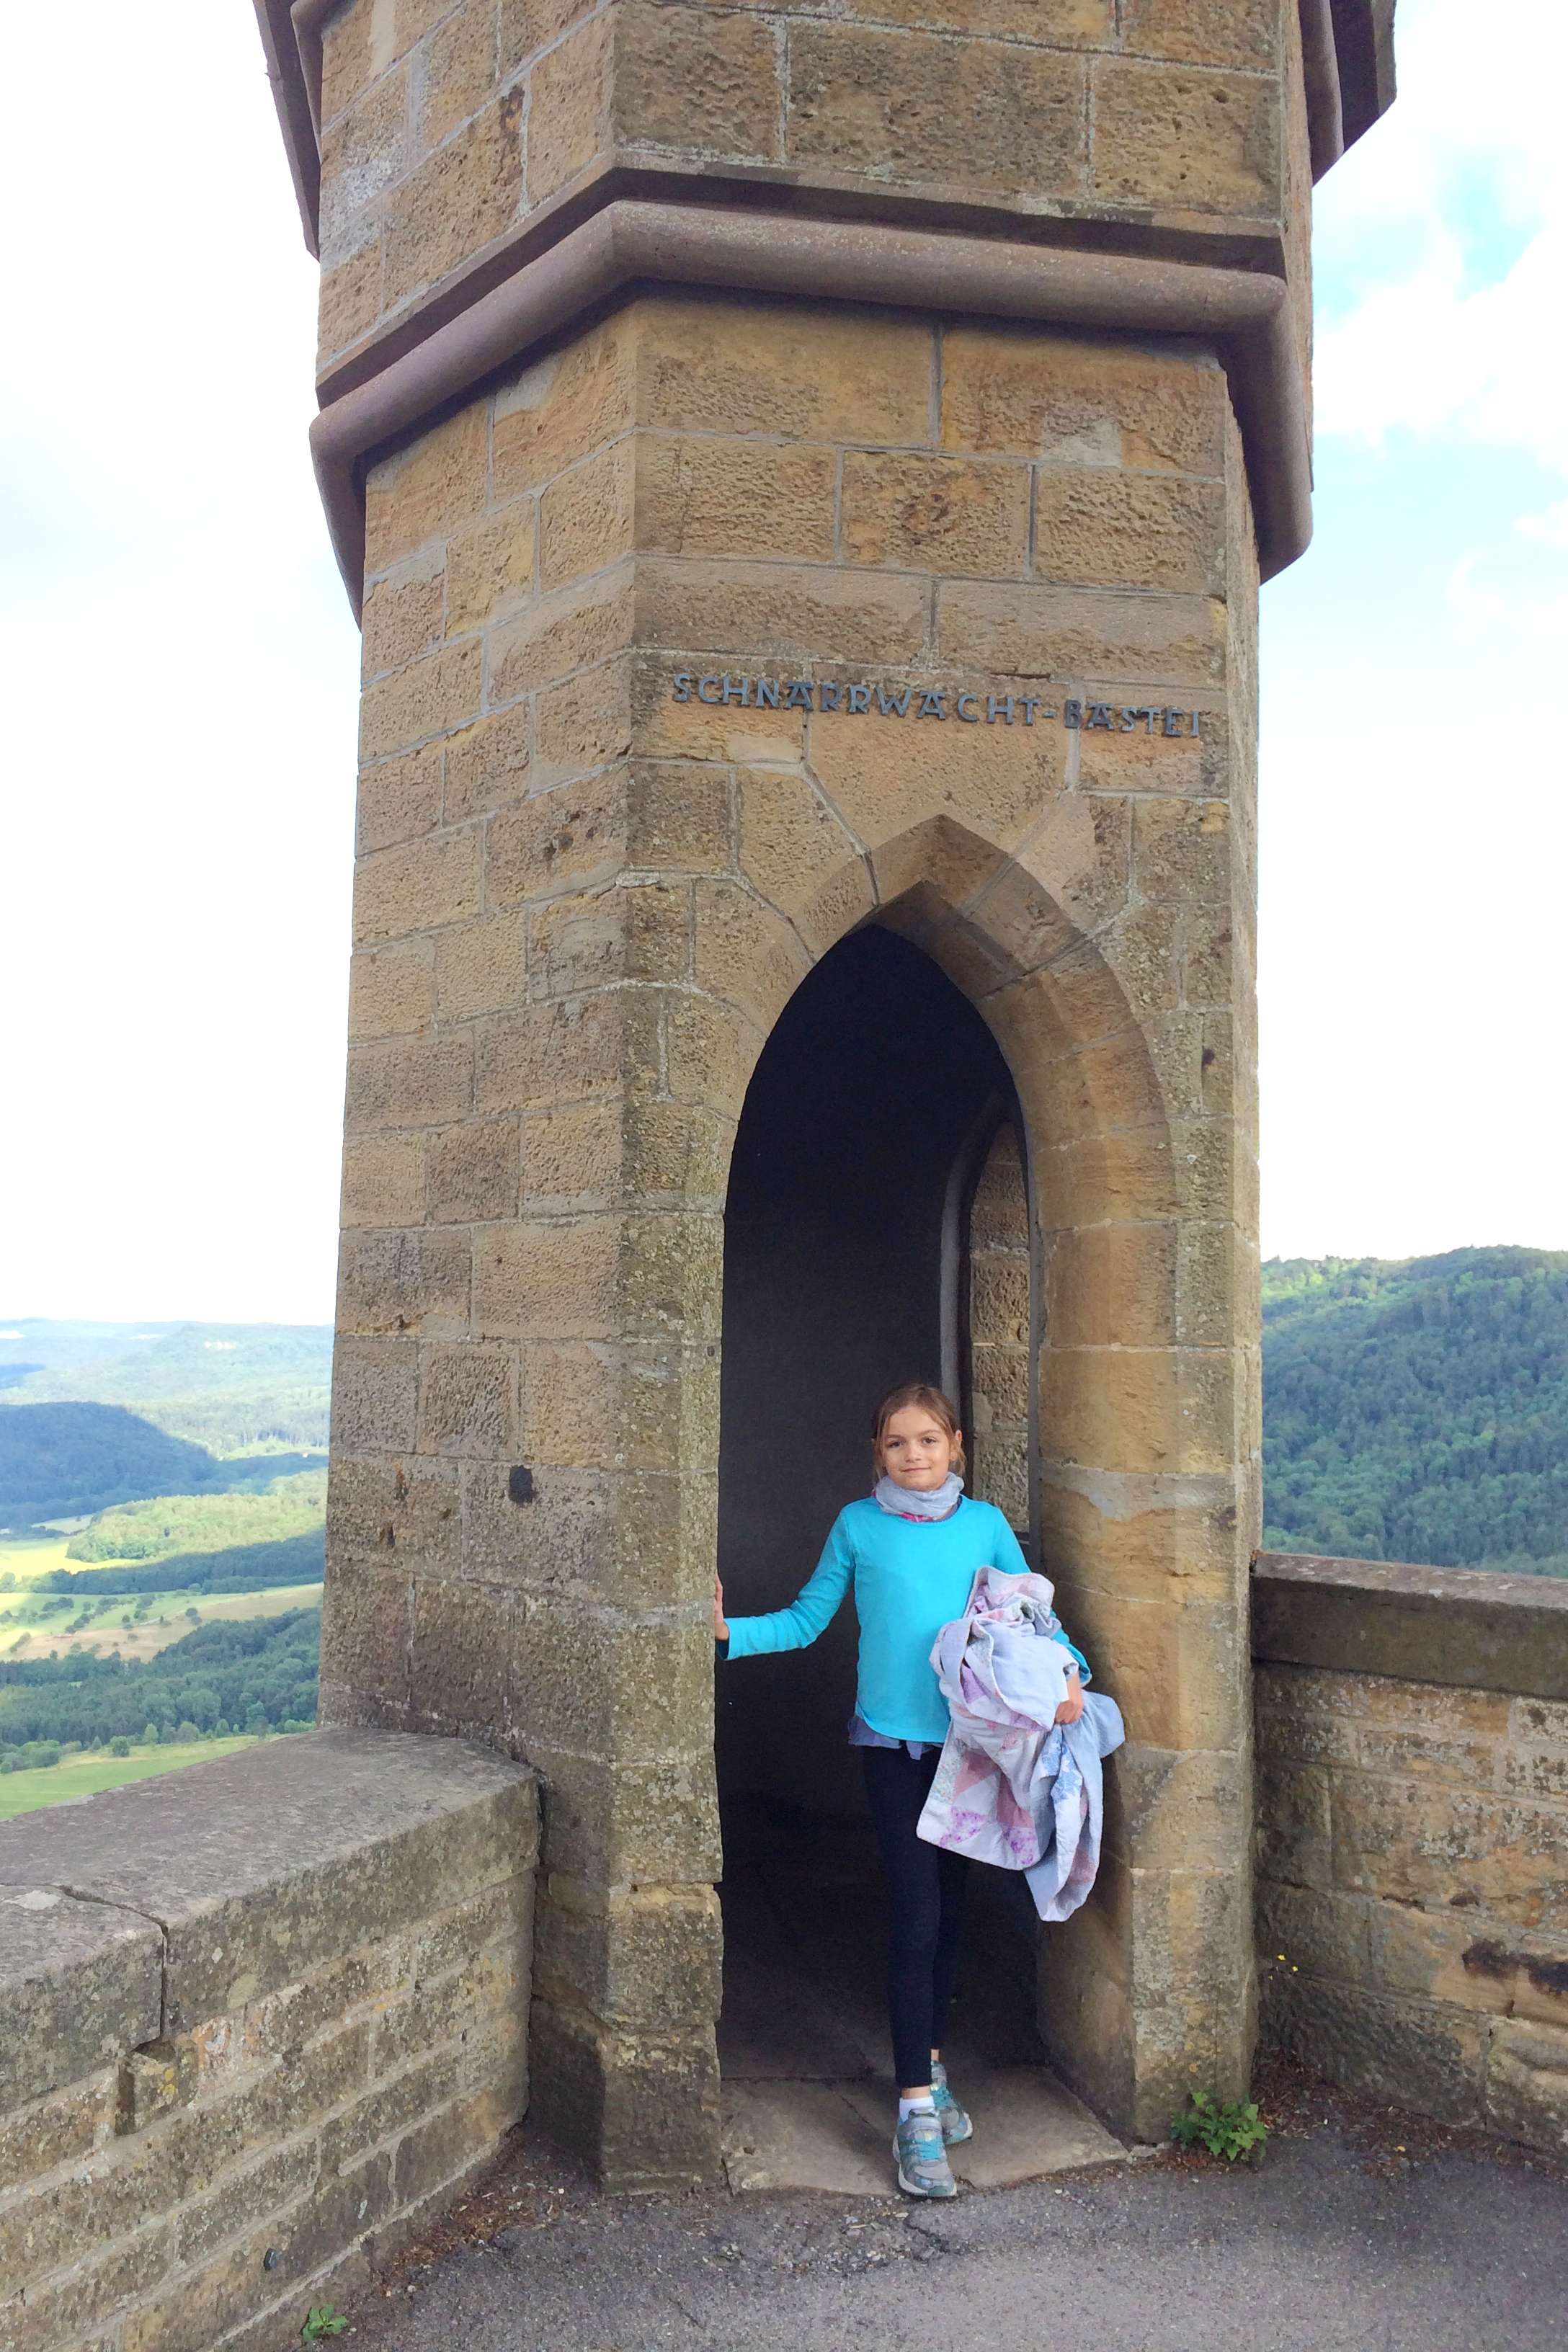 Princess Ilse at the castle.